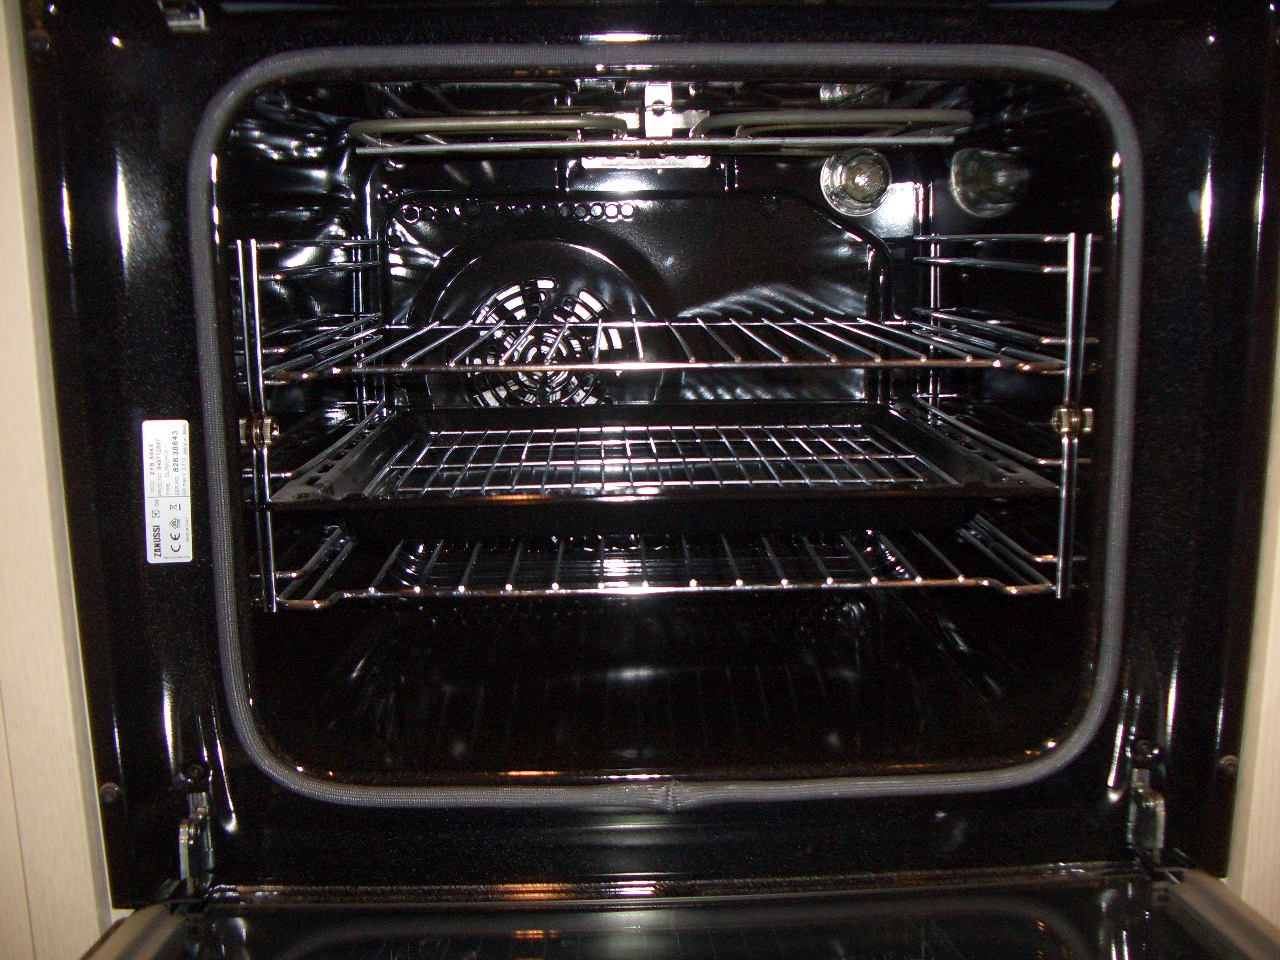 Sparkly Oven Homepage For Oven Cleaning Services In Solihull